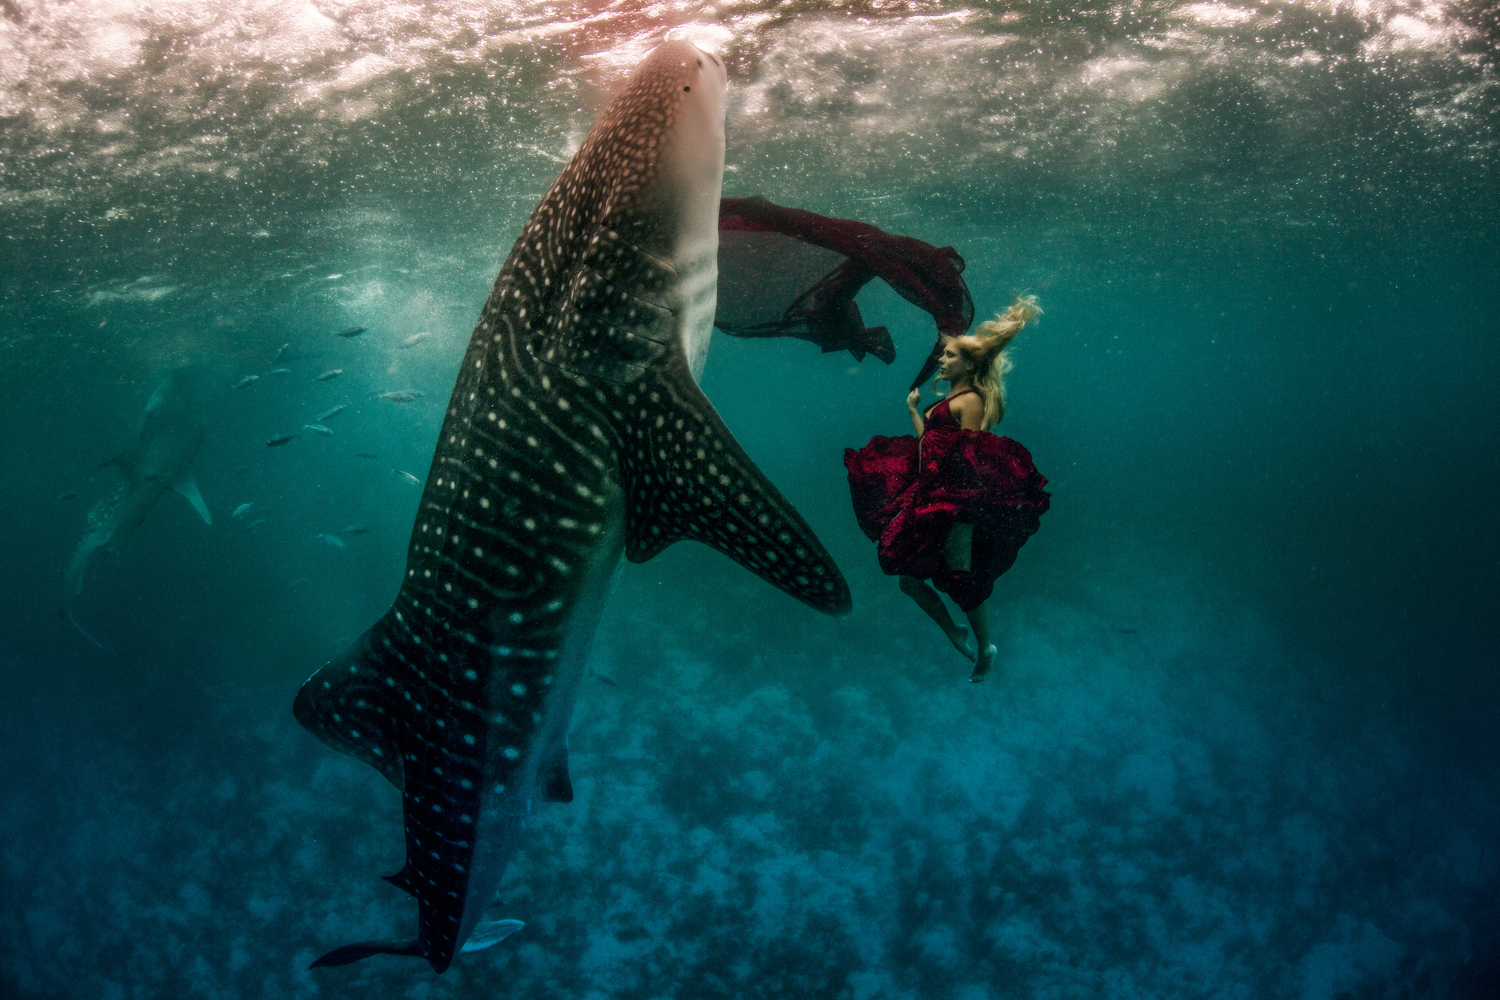 how-to-edit-underwater-photos-in-photoshop-image-retouching-sample